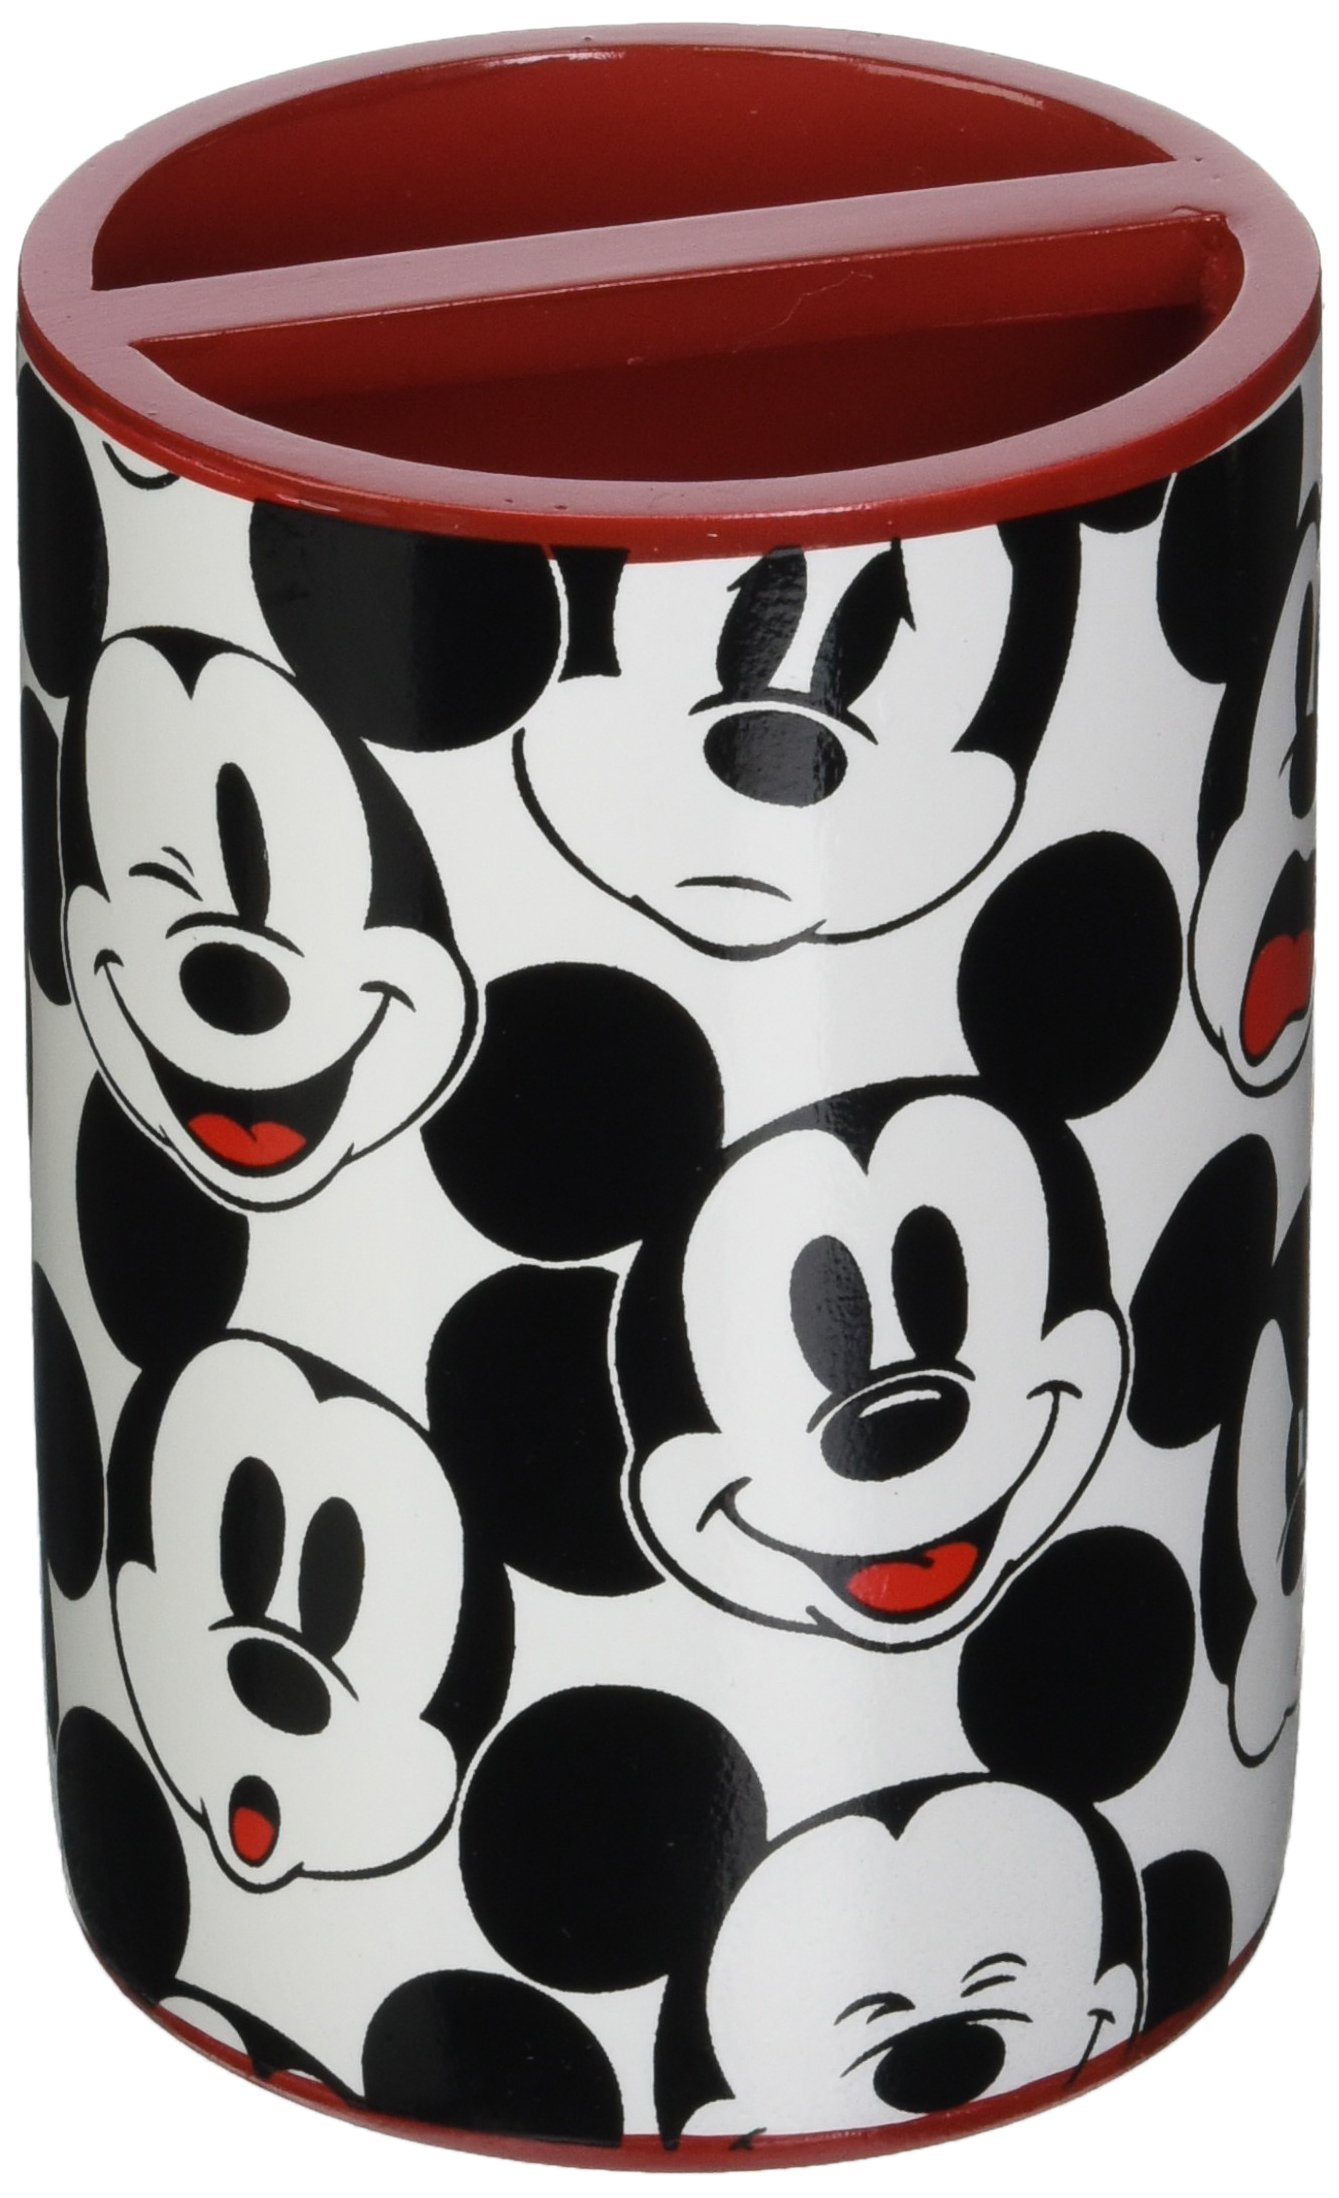 Disney Mickey Mouse Big Face Mickey Toothbrush Holder by Jay Franco